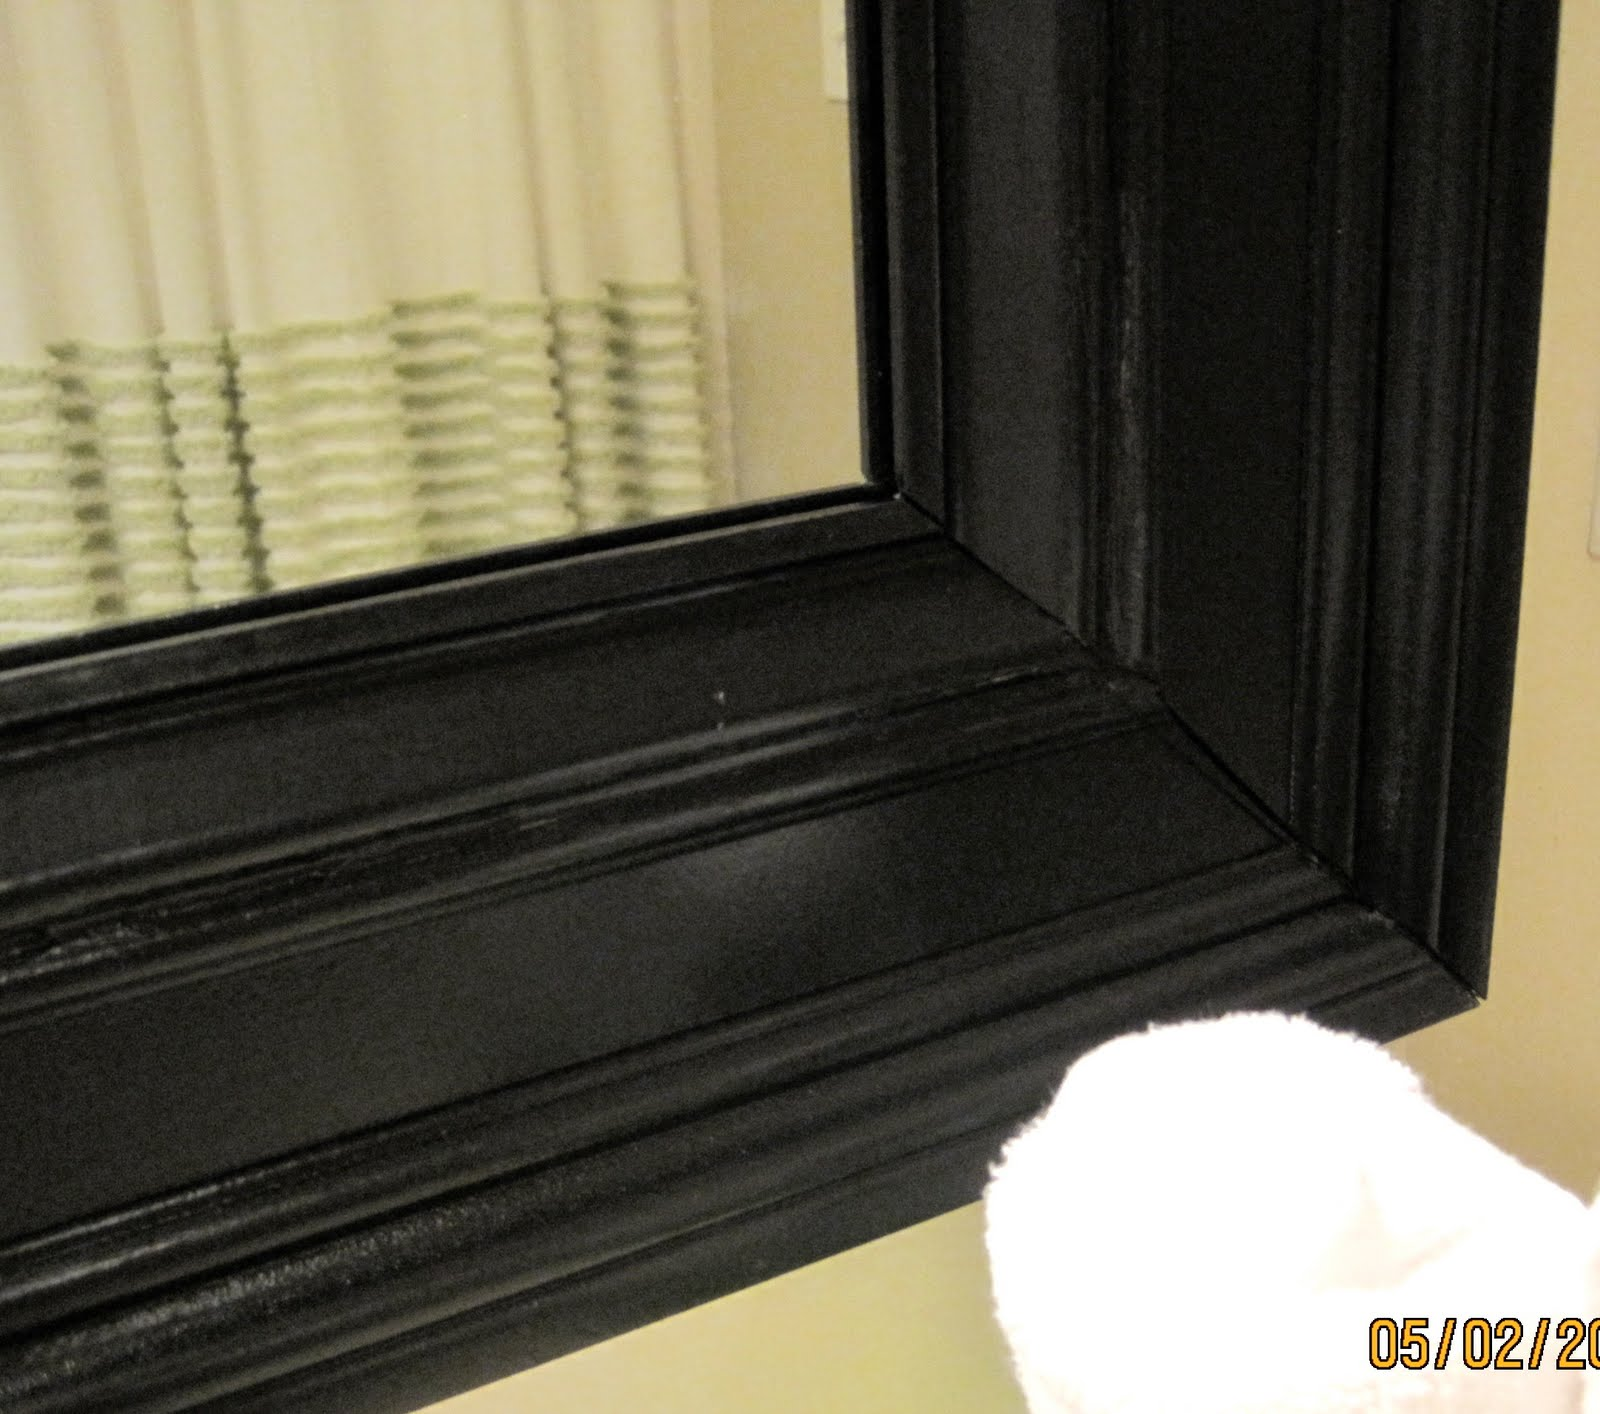 Frame a bathroom mirror with molding - Frame A Bathroom Mirror With Molding 8